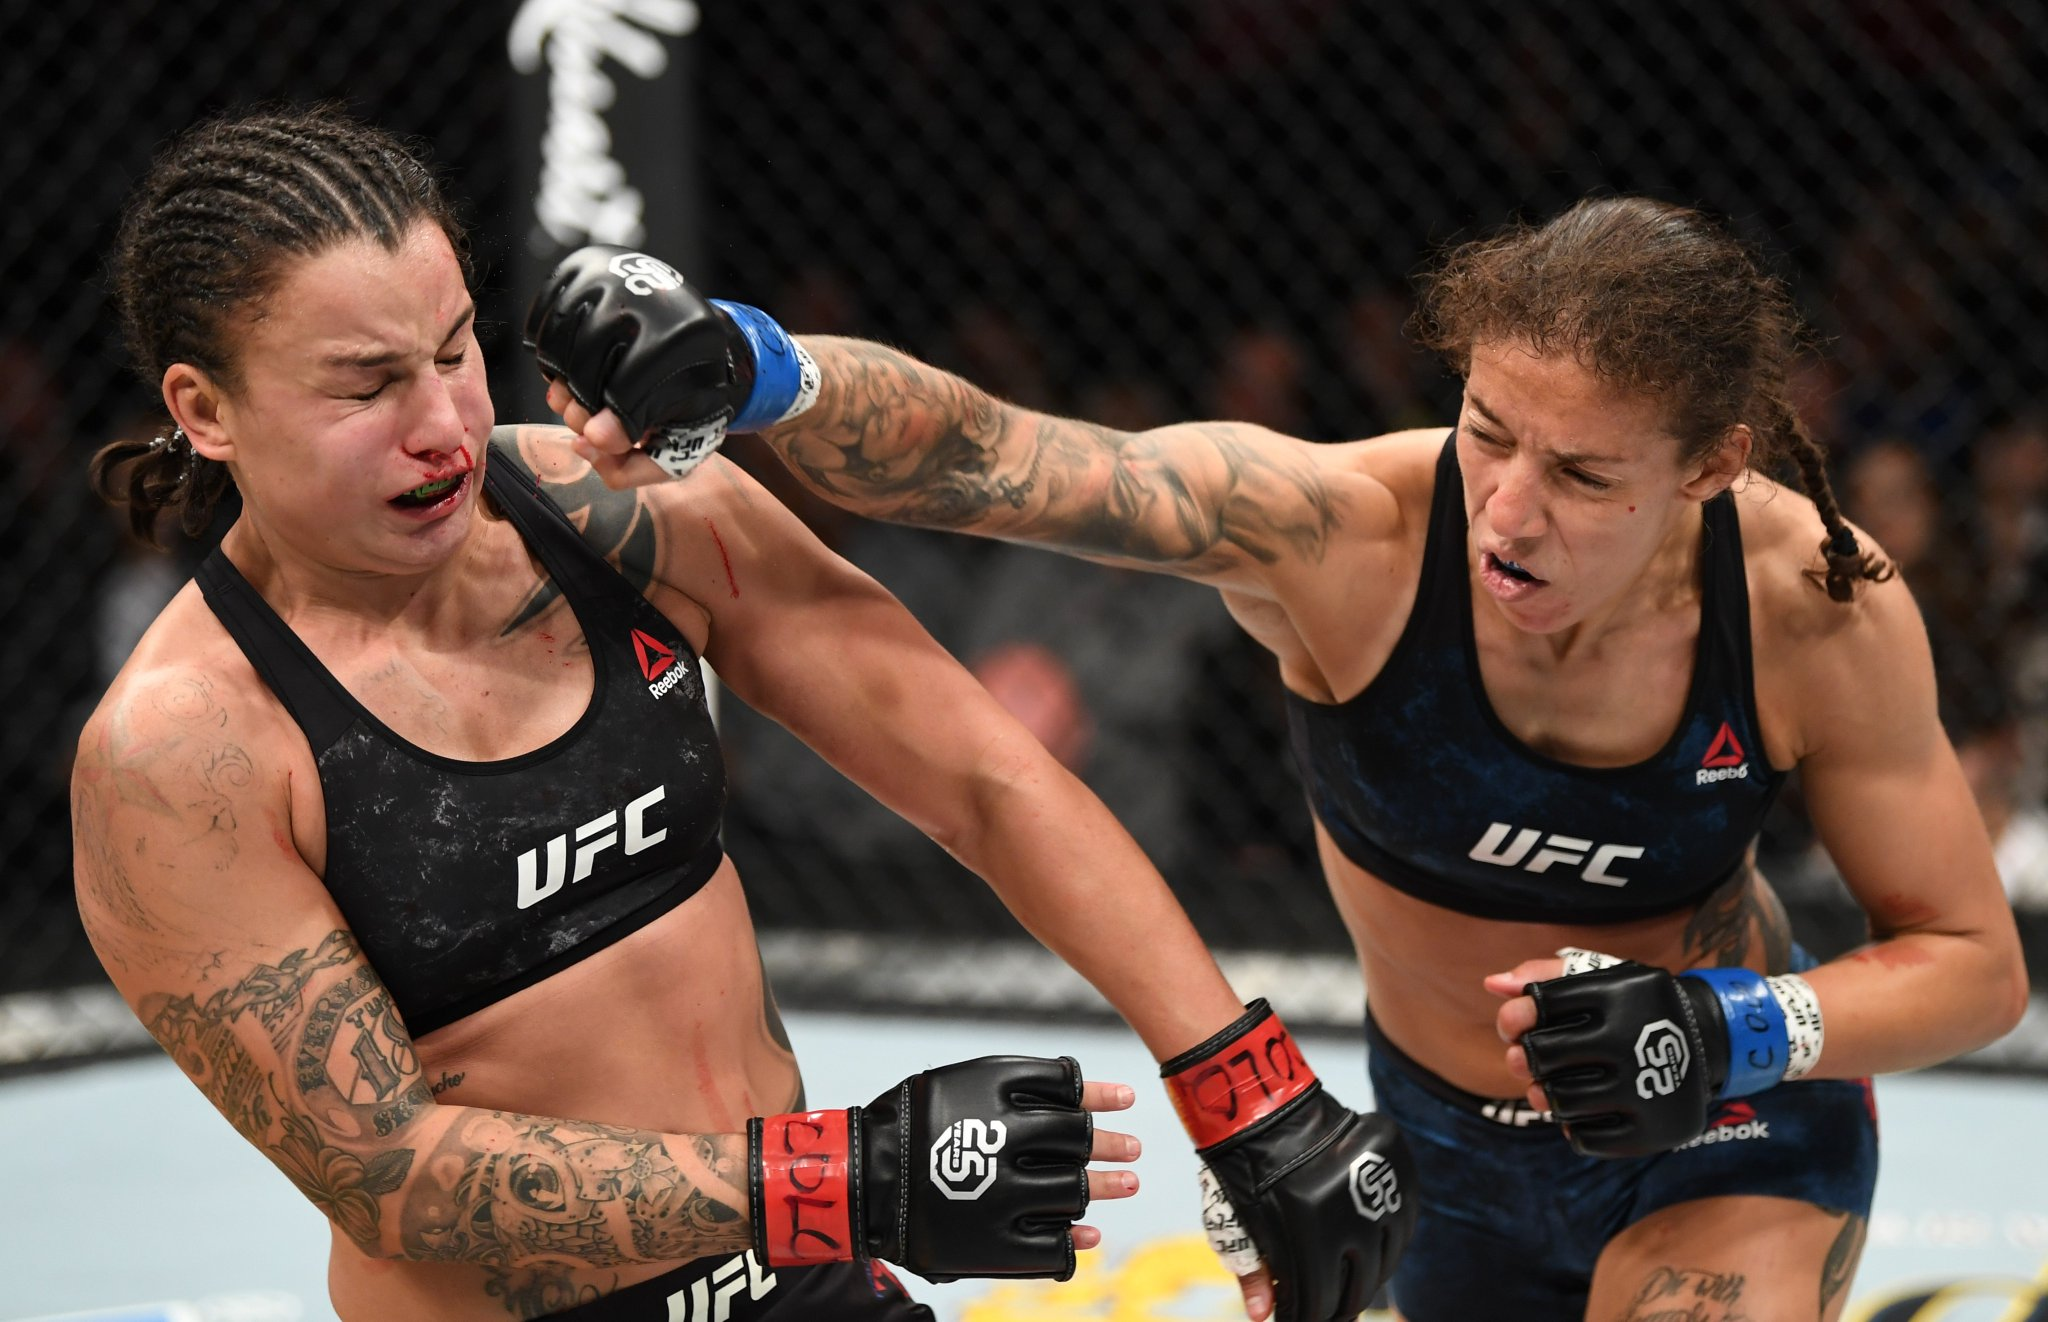 UFC Fight Night 139 Results: The Iron Lady is Back! Gets an Easy Win Over Raquel -